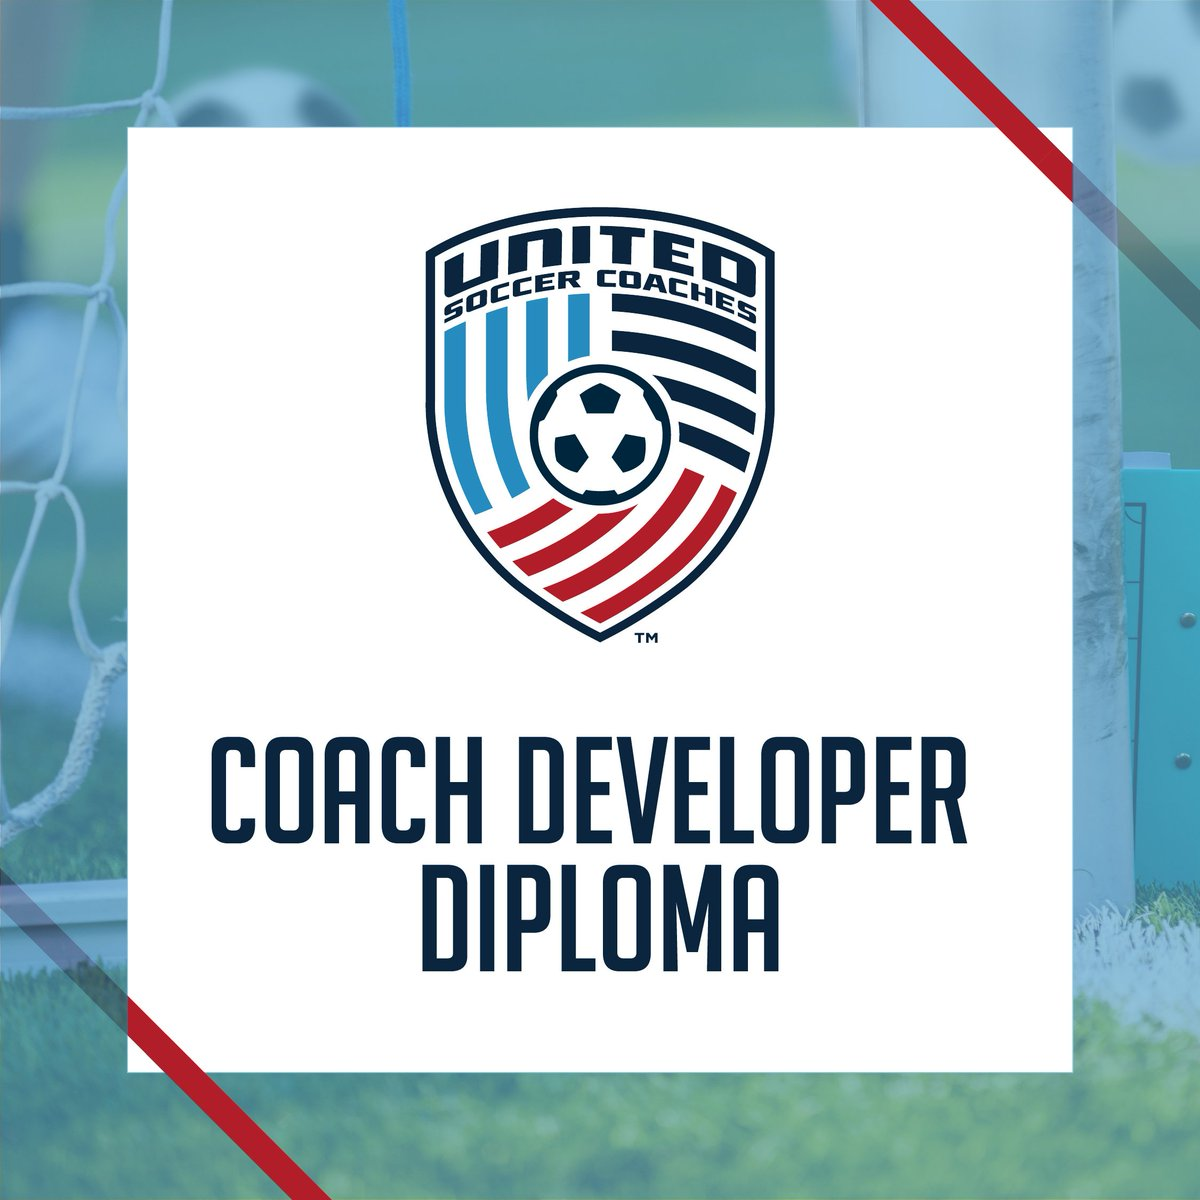 United Soccer Coaches | Uniting Coaches Around the Love of